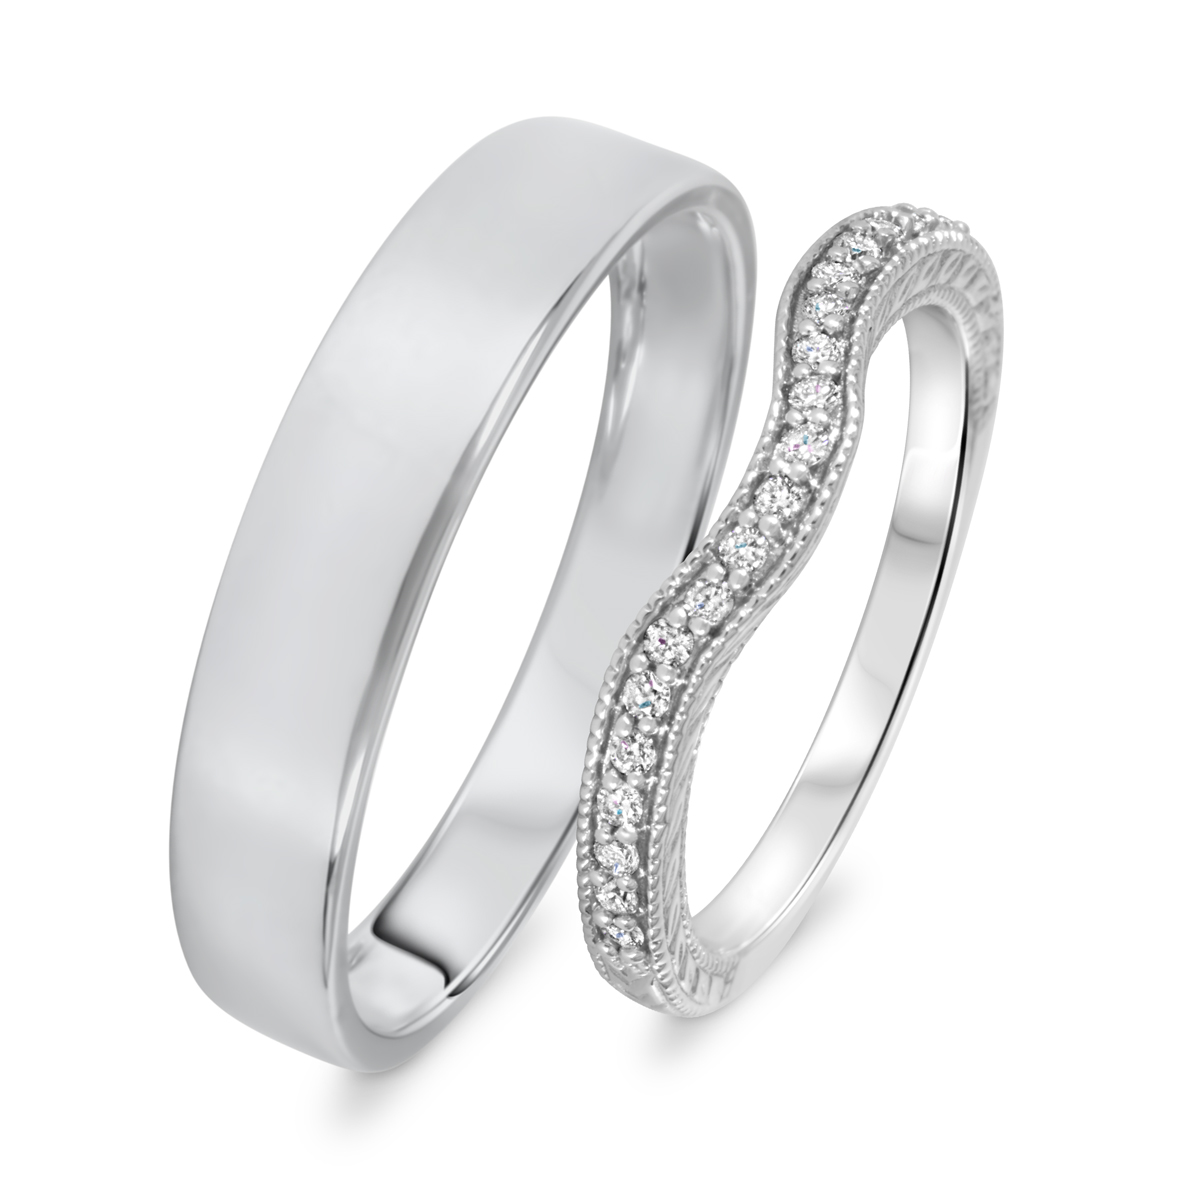 1/6 Carat T.W. Round Cut Diamond His And Hers Wedding Band Set 14K White Gold-